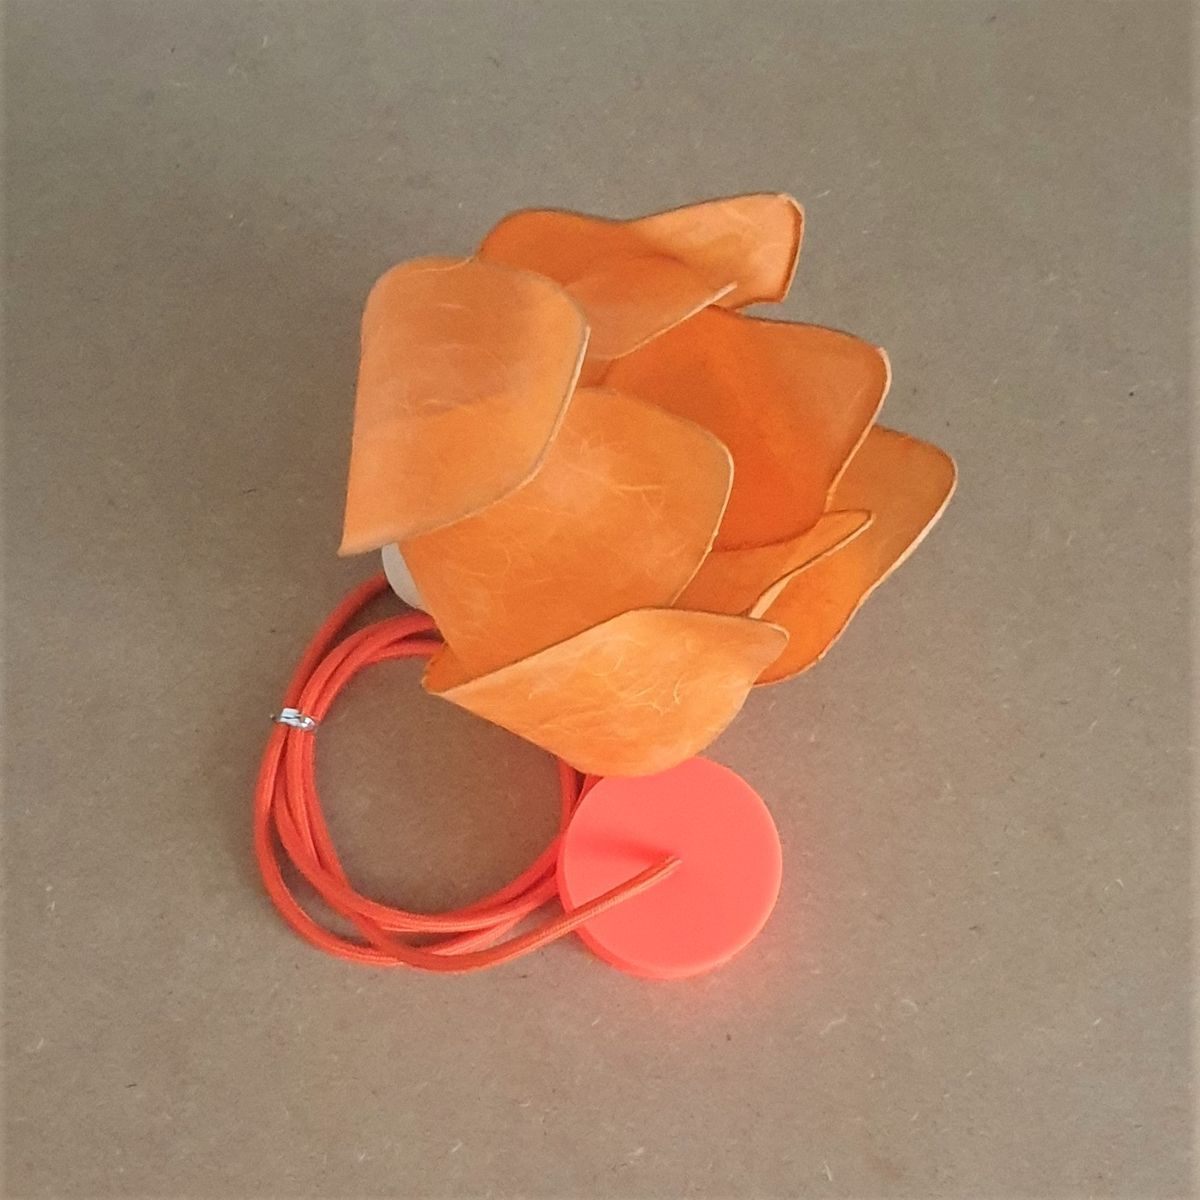 orange lamp with cable